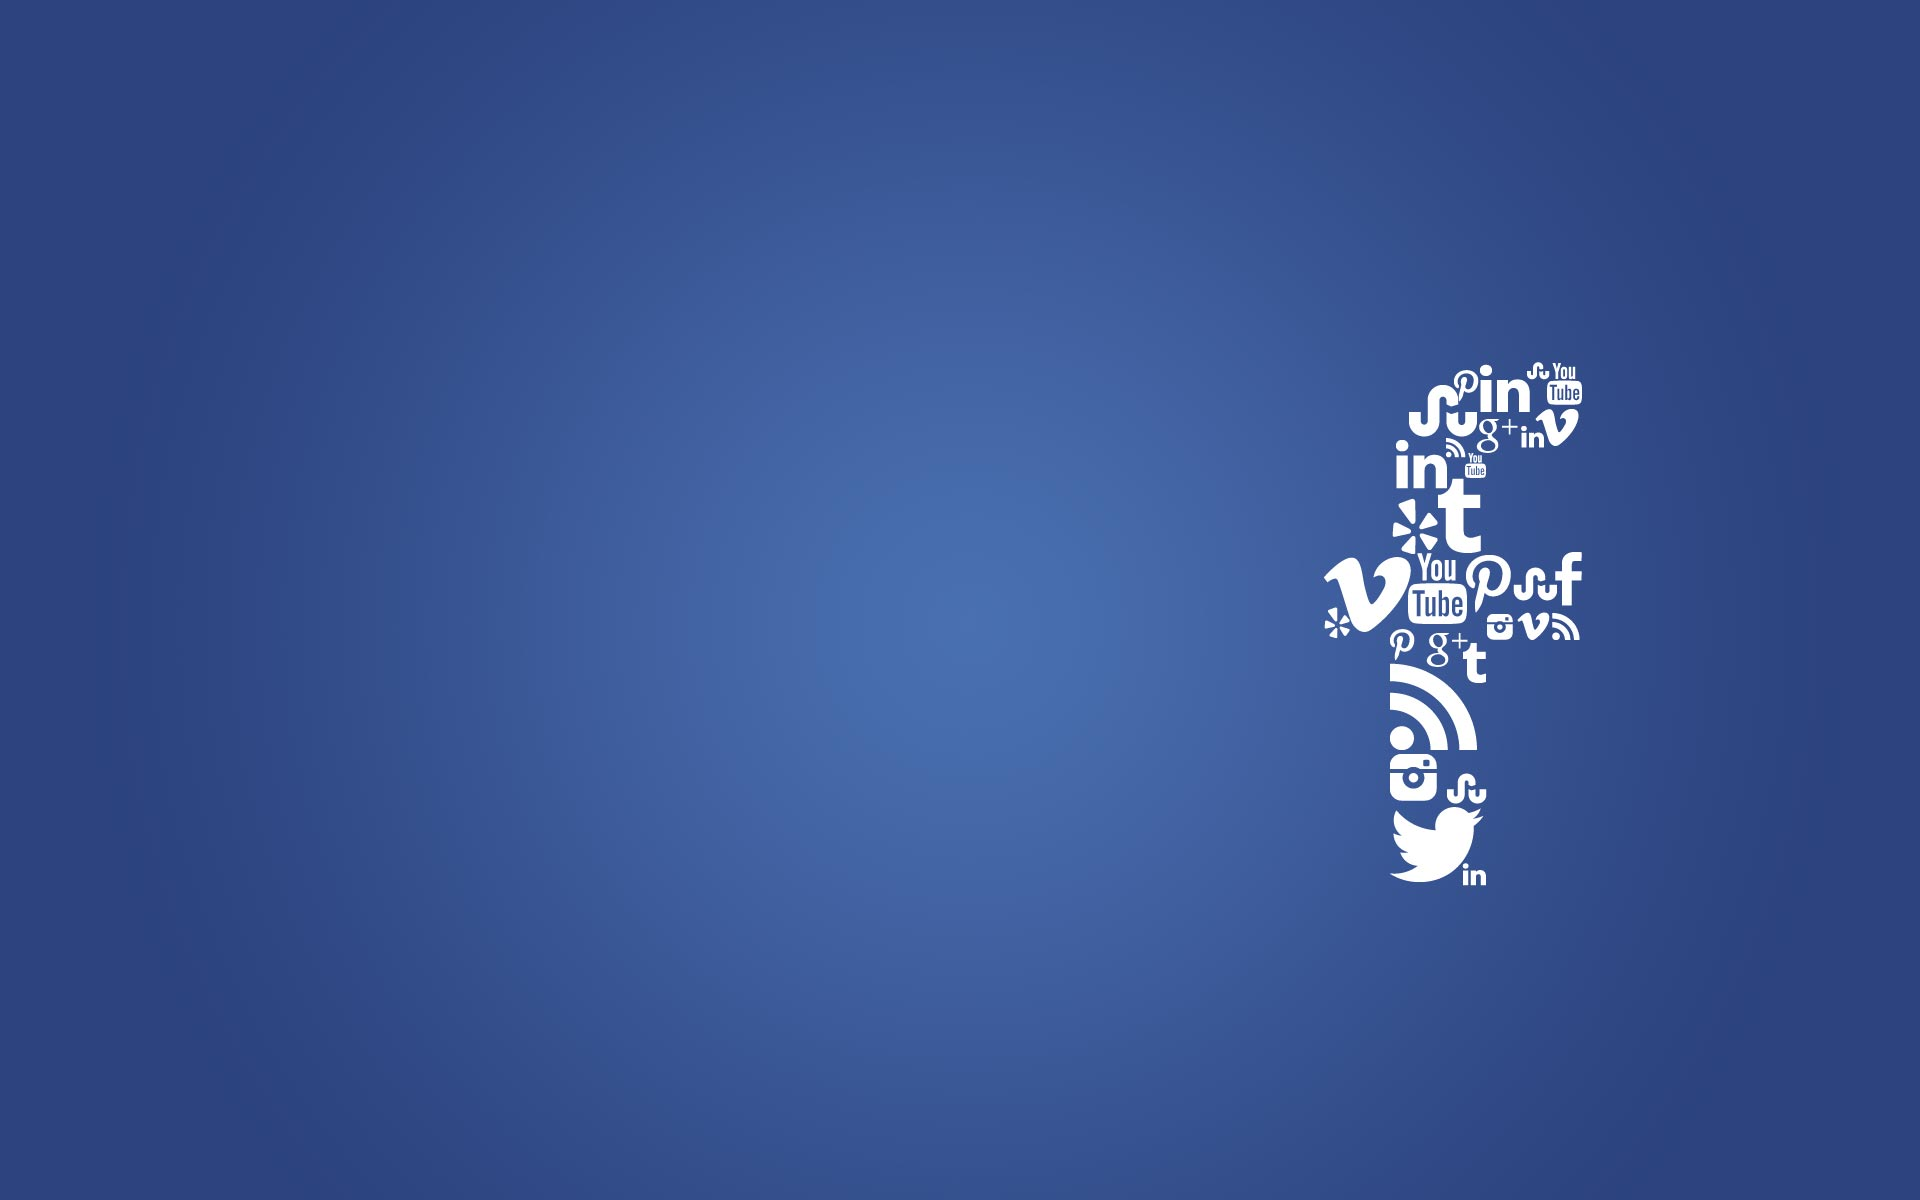 facebook backgrounds ferdin yasamayolver